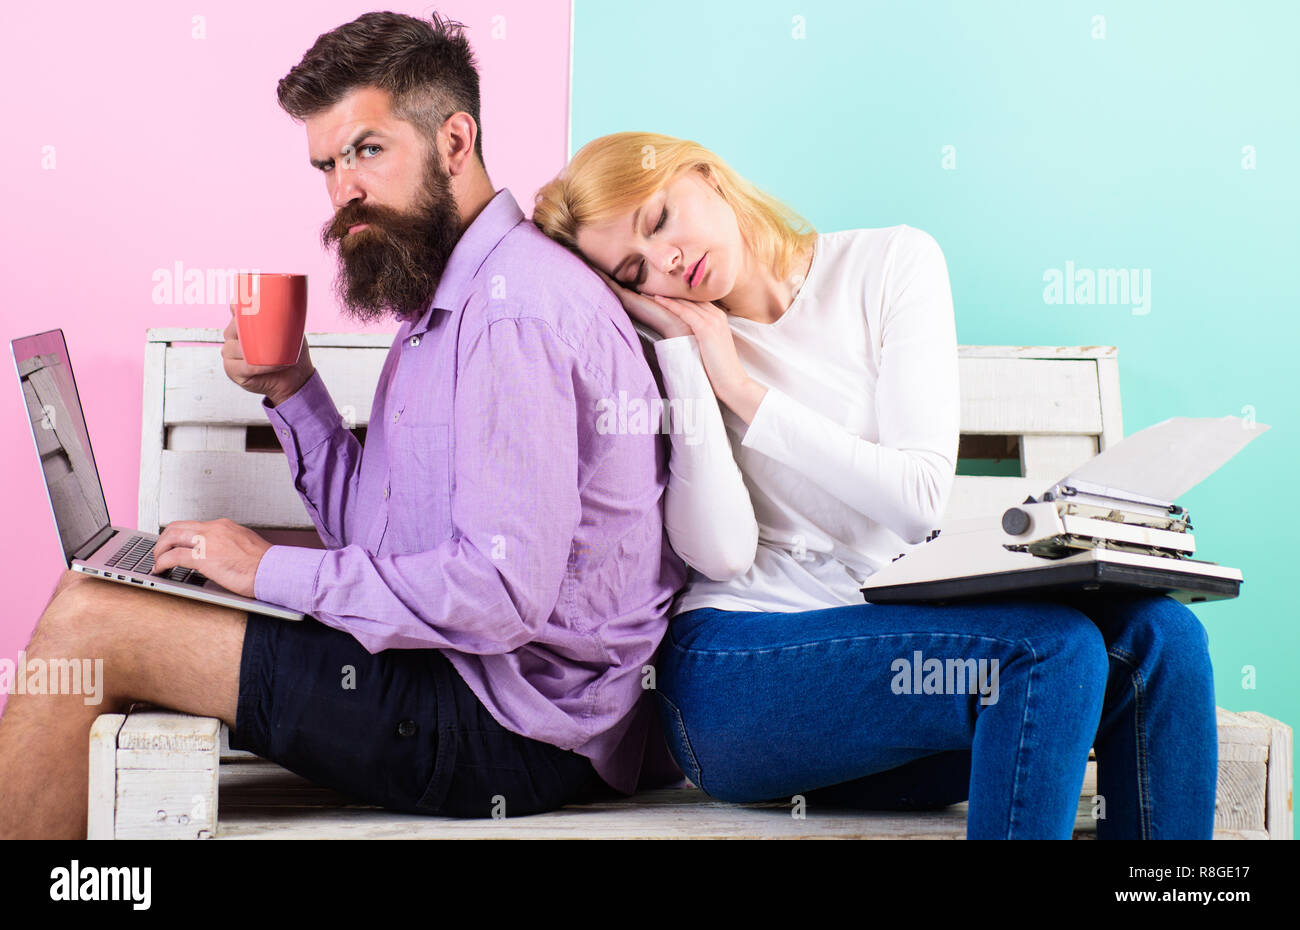 Technological progress benefits. Increase your productivity using modern technology. Technical progress. Woman sleep retro typewriter and man modern laptop. Take advantage technology development. - Stock Image